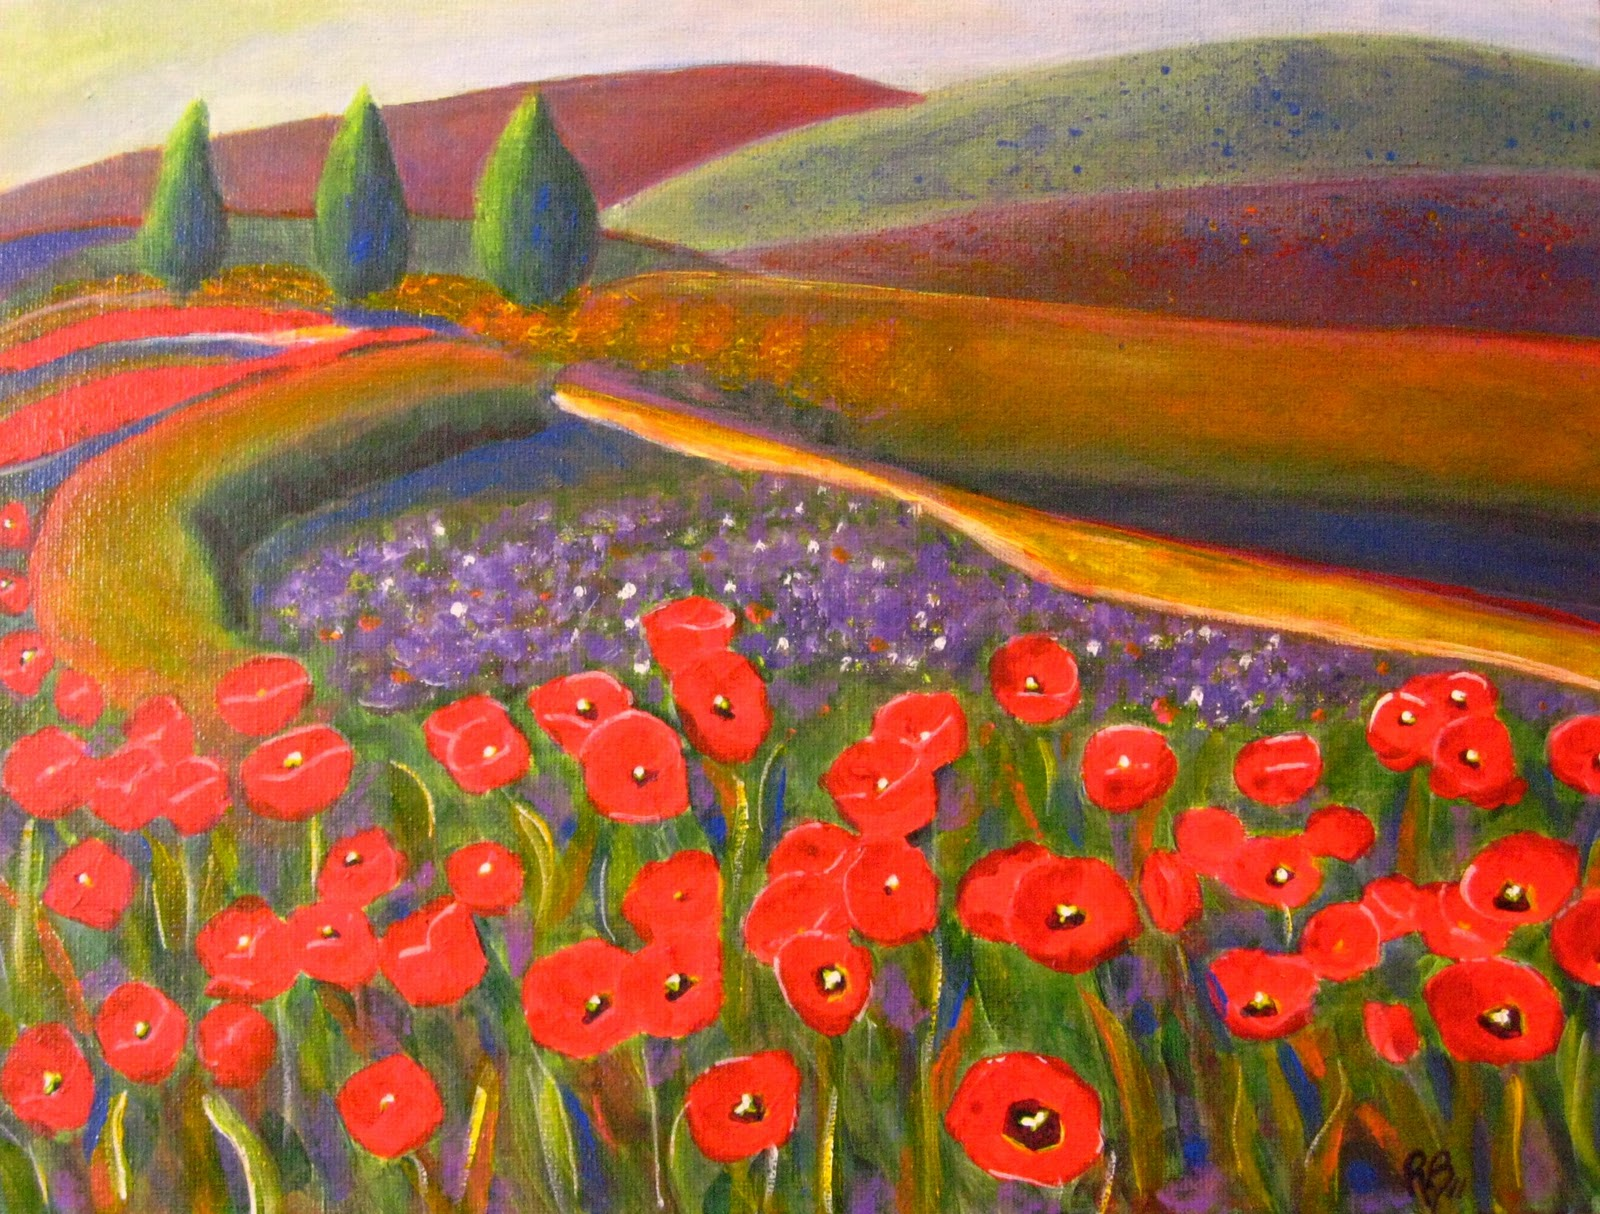 Robie benve art colorful landscape acrylic painting for Painting large flowers in acrylic